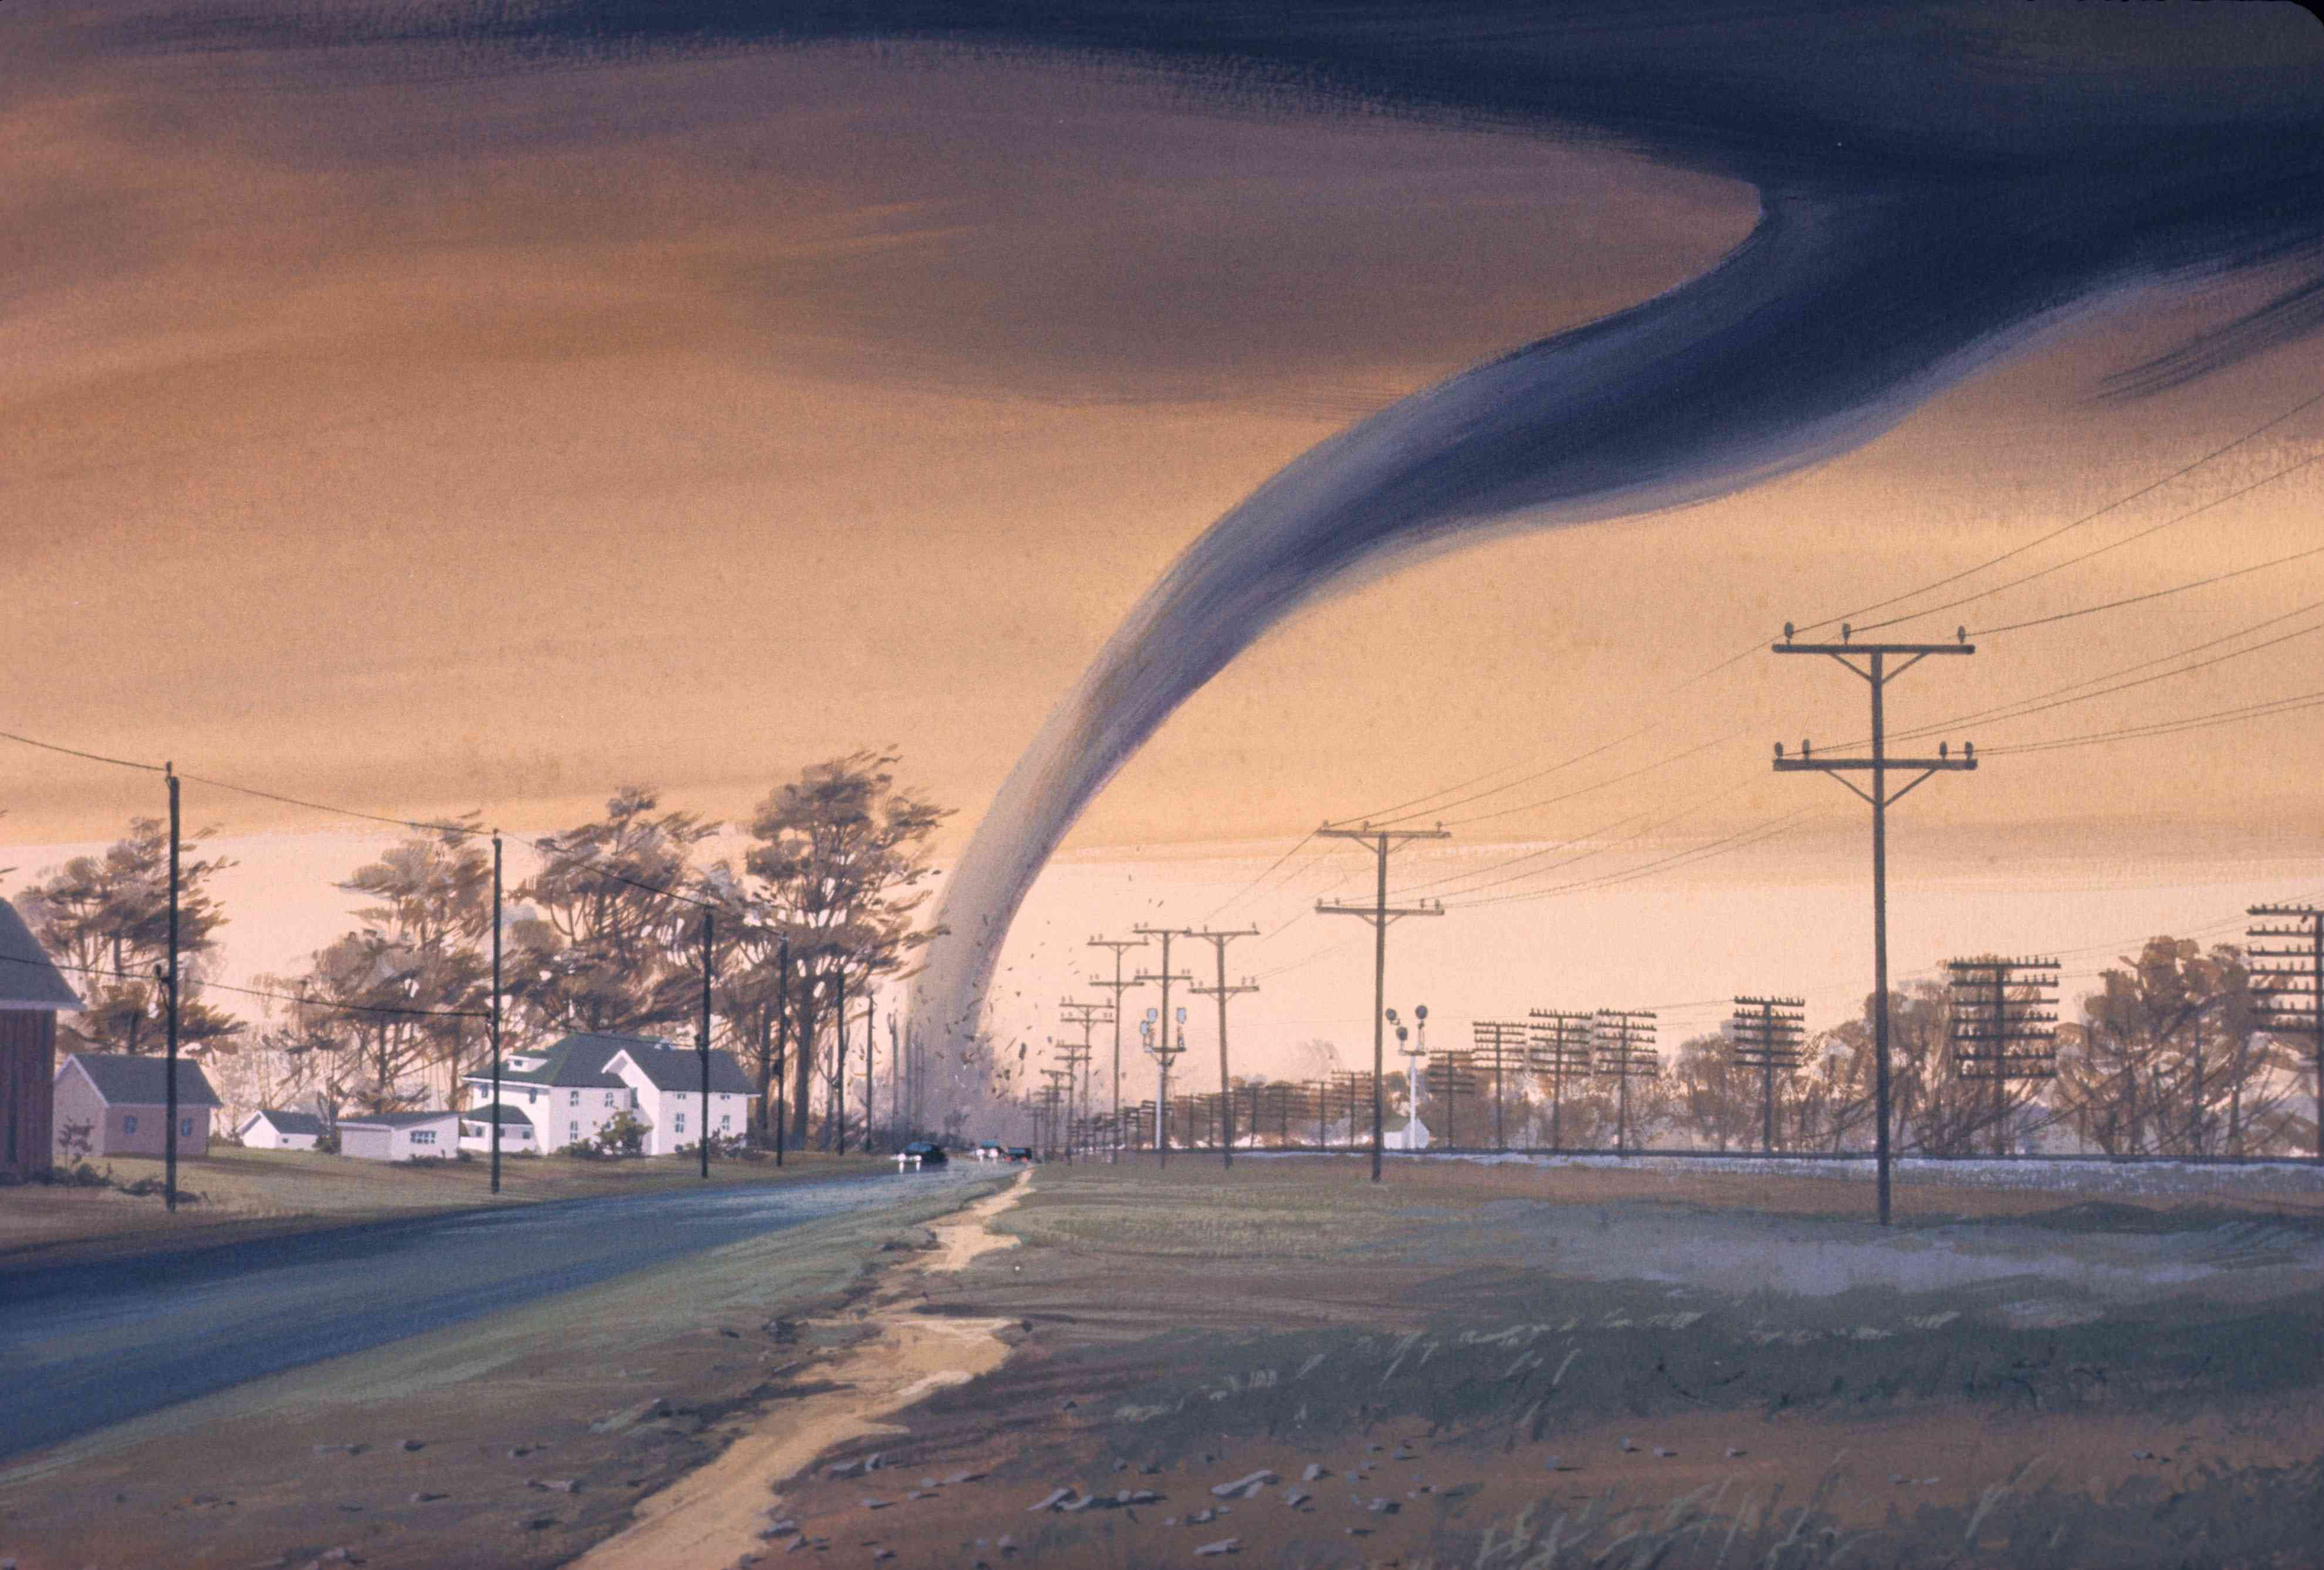 An artists rendition of a tornado destroying a structure in a small community by a railroad tracks.